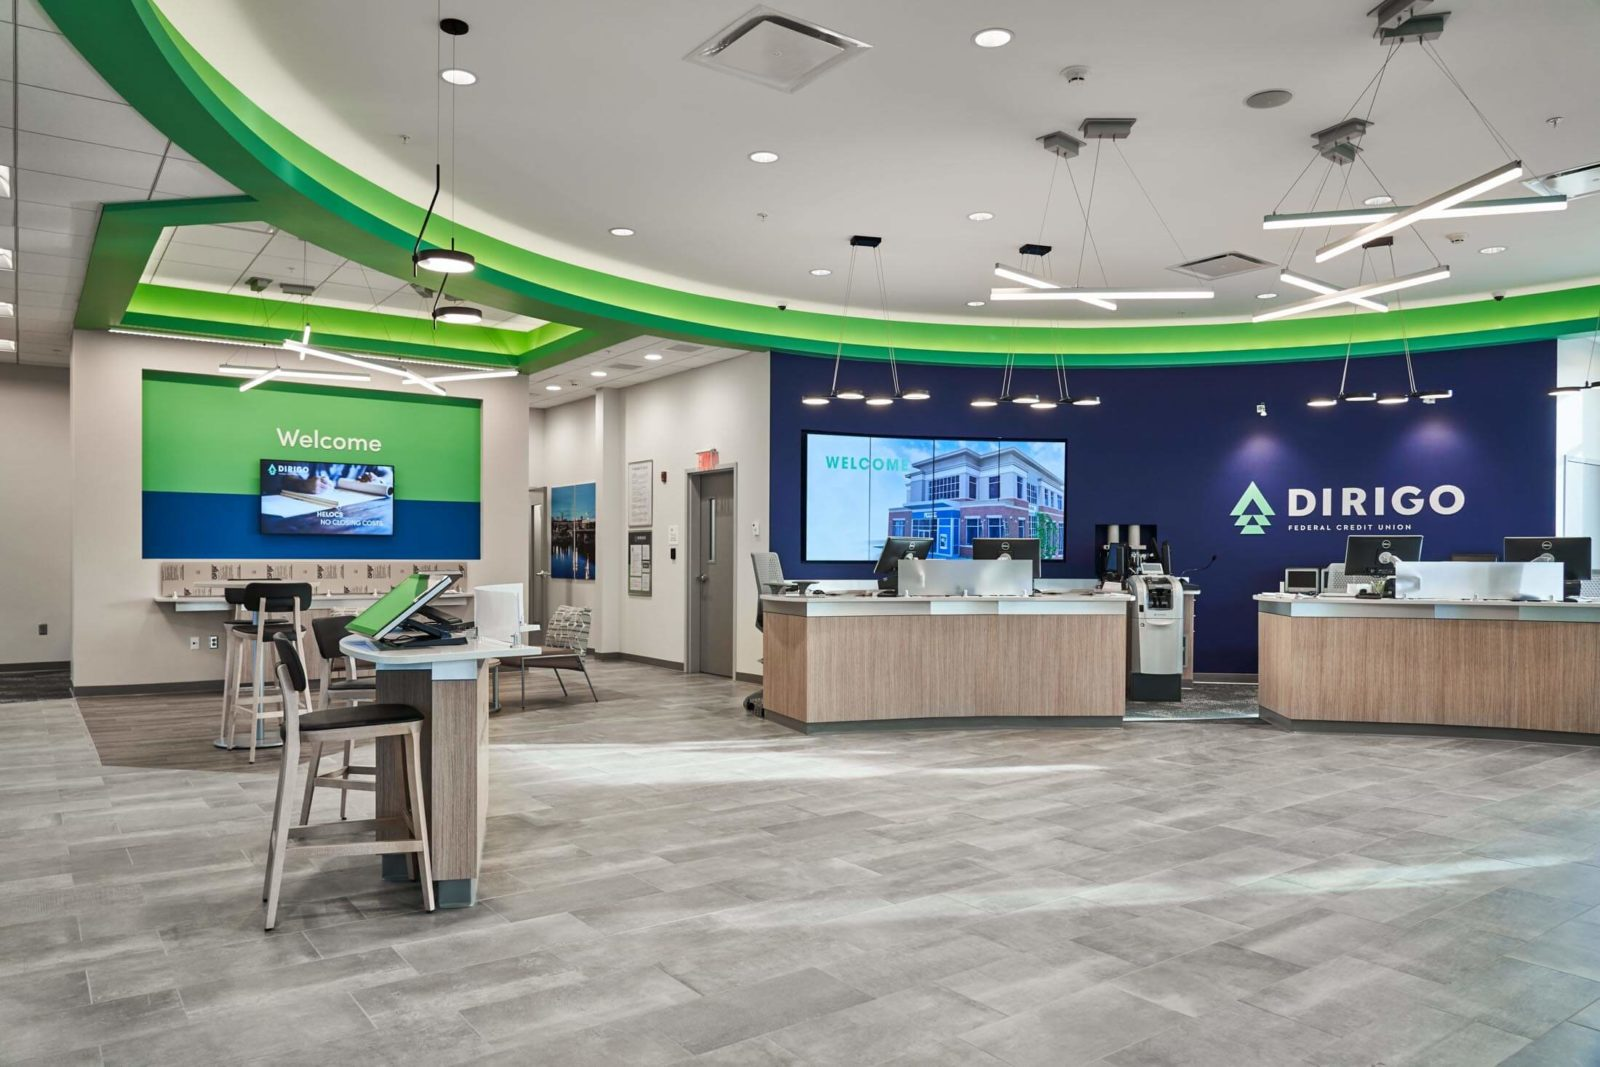 Dirigo federal credit union lobby area with tables and desks